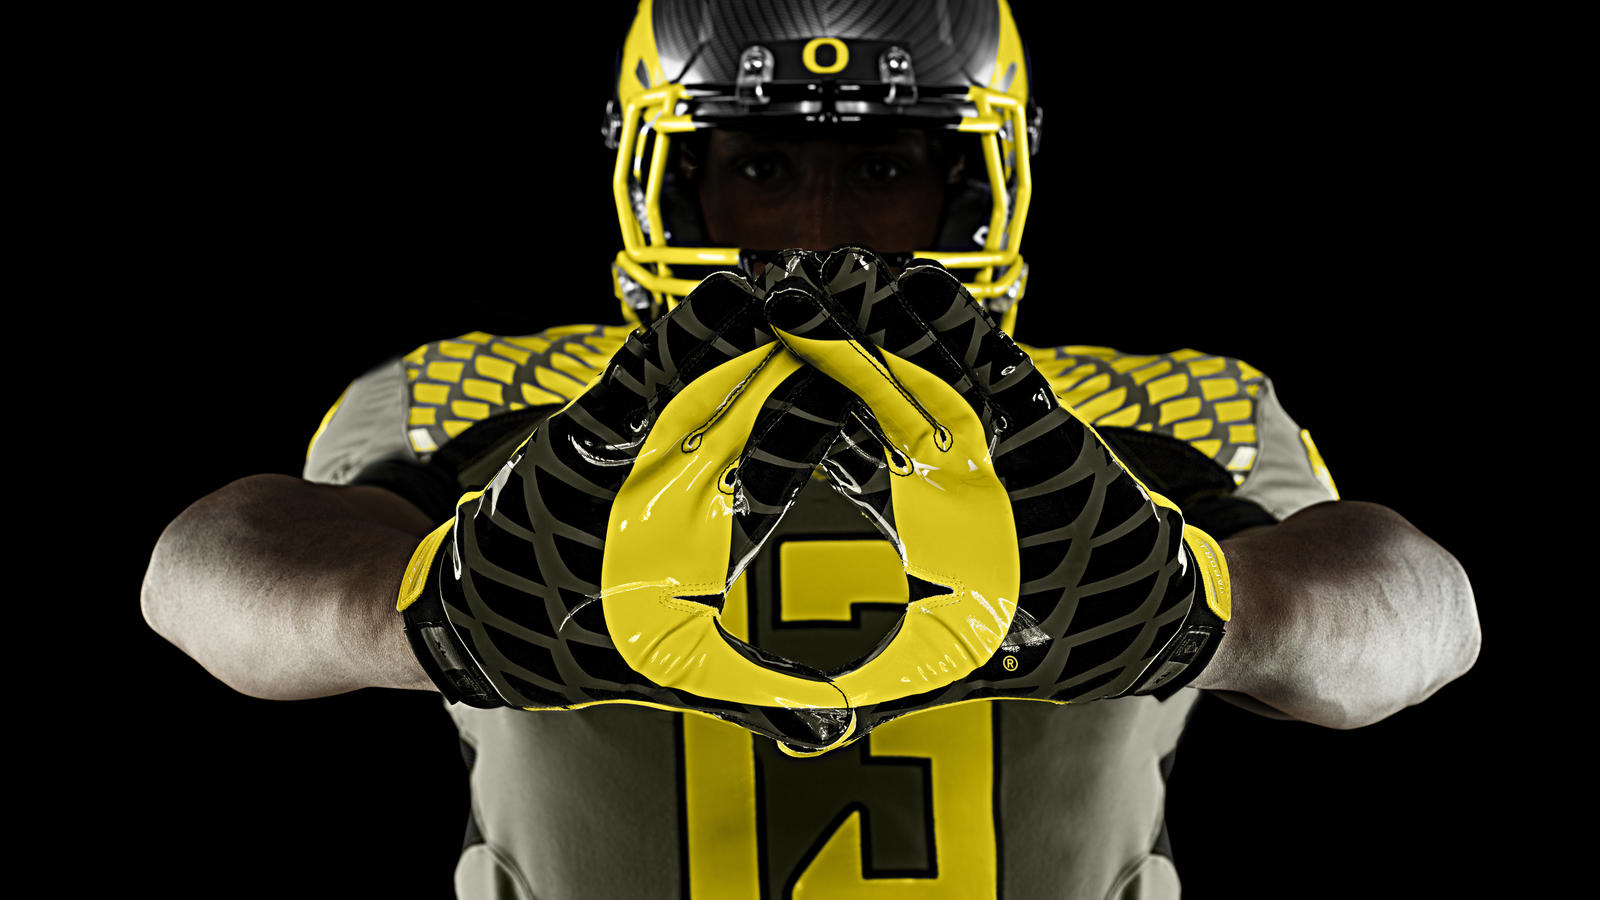 wholesale dealer d8aef f99aa Oregon Ducks' Spring Game Uniforms Honor Service Men and ...